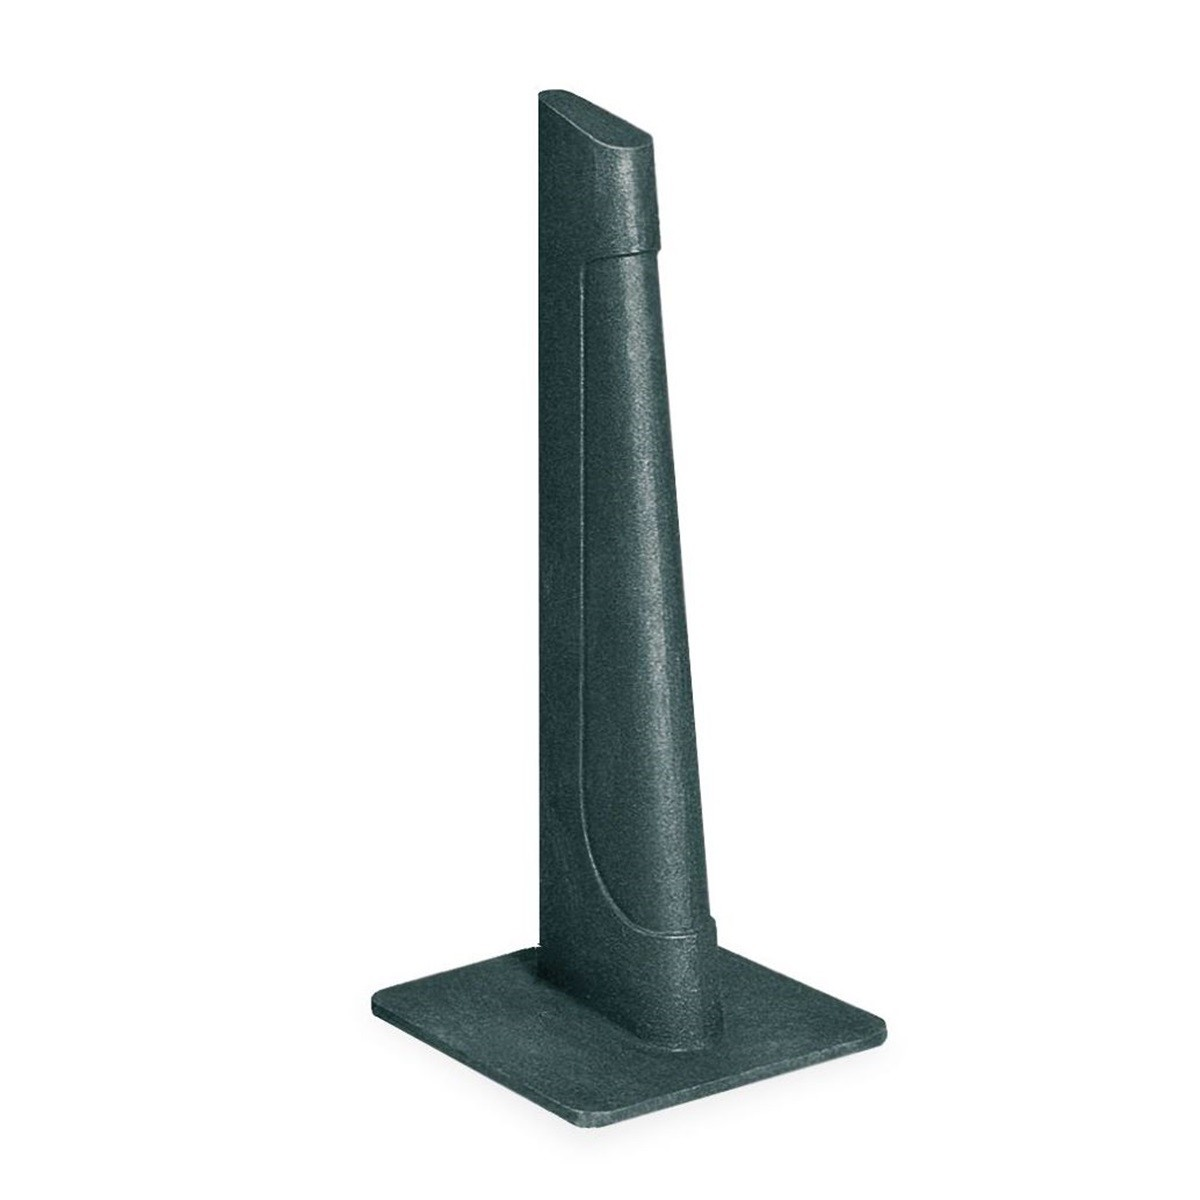 Small Ton bollard of casting to tighten and 538mm height - C-503